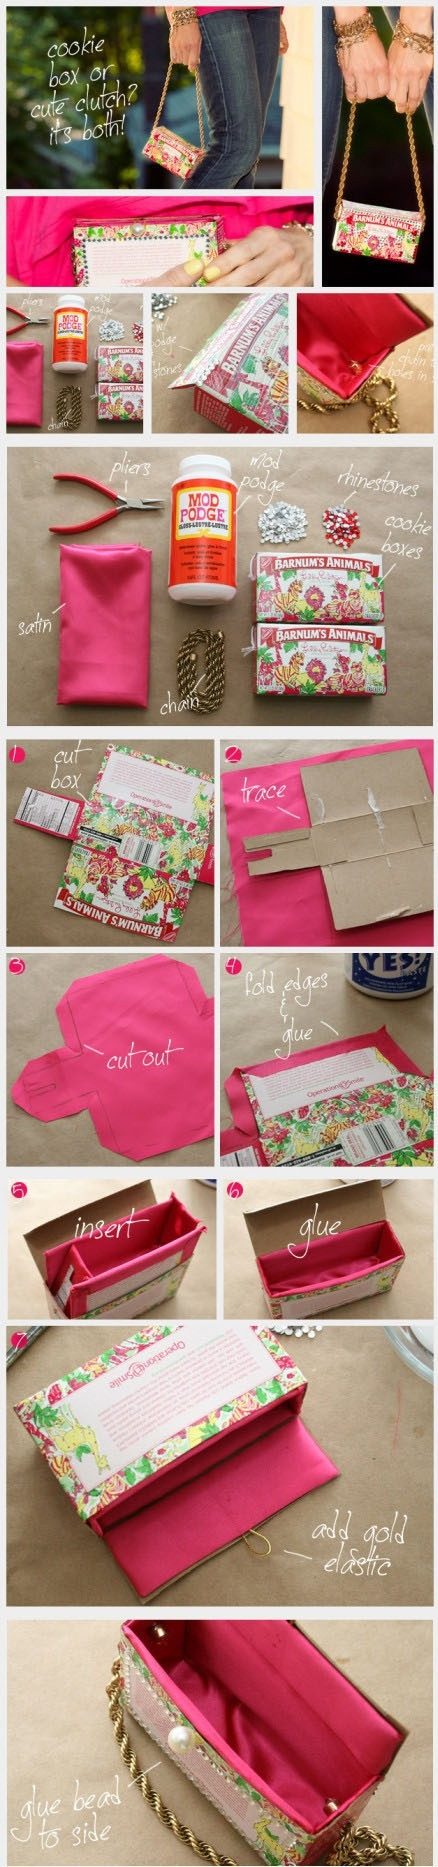 Diy cute clutch pictures photos and images for facebook tumblr diy cute clutch solutioingenieria Images